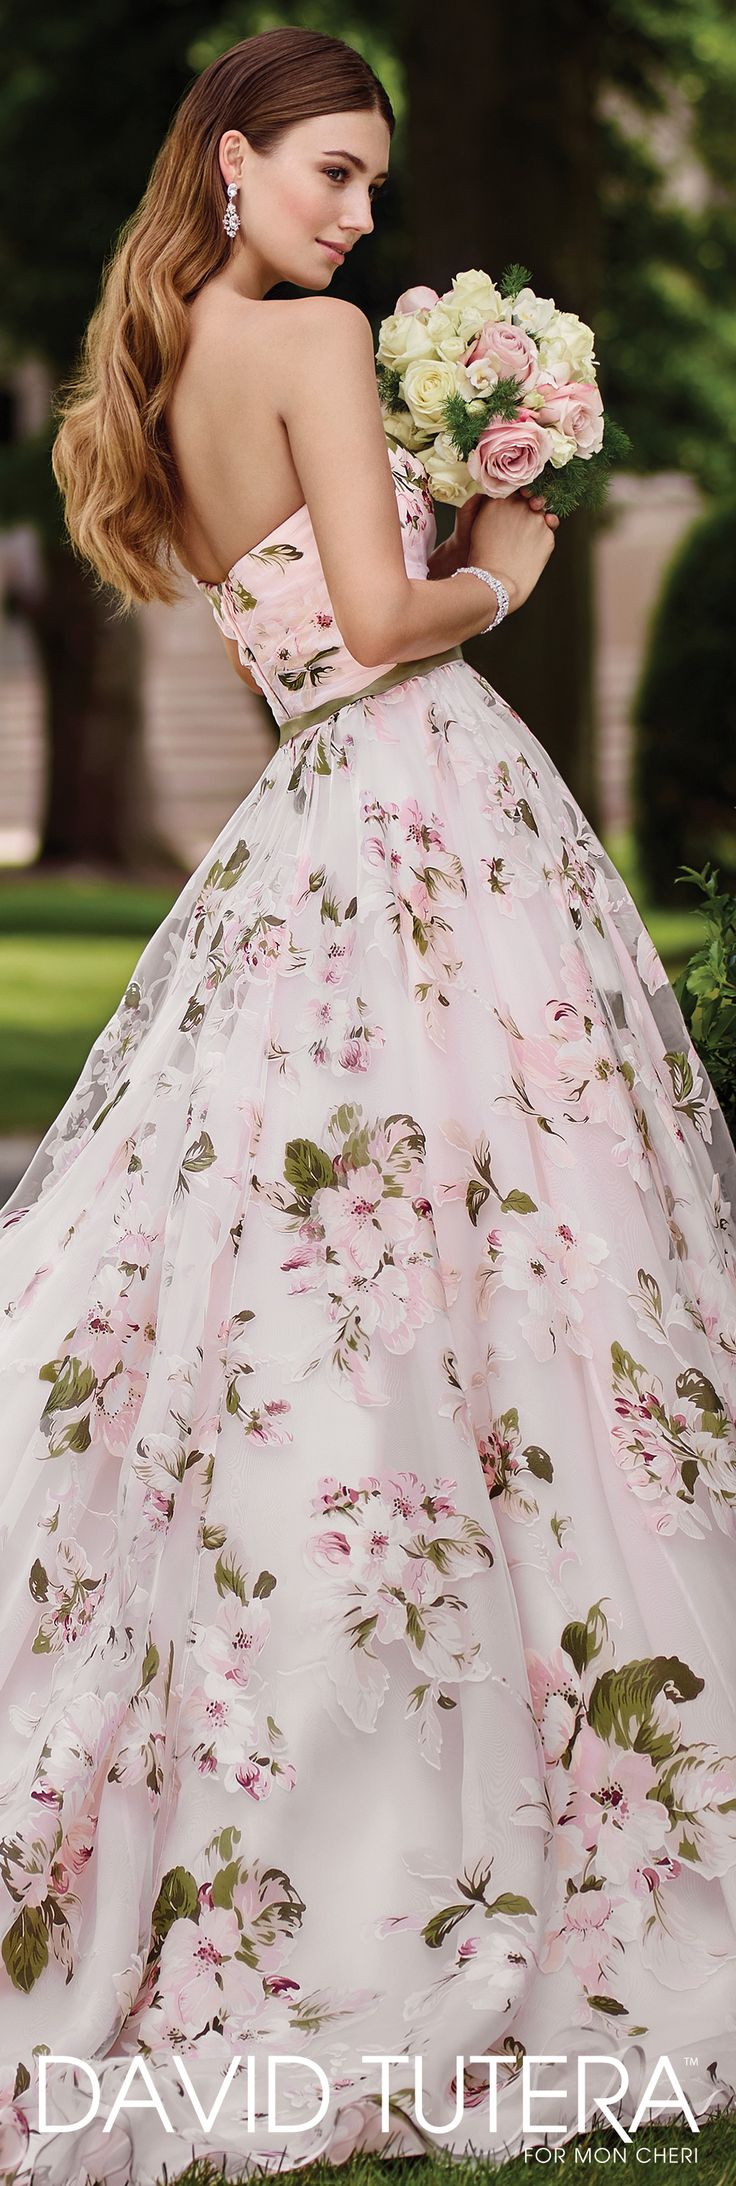 725 best david tutera for mon cheri images on pinterest for Wedding dresses with flowers